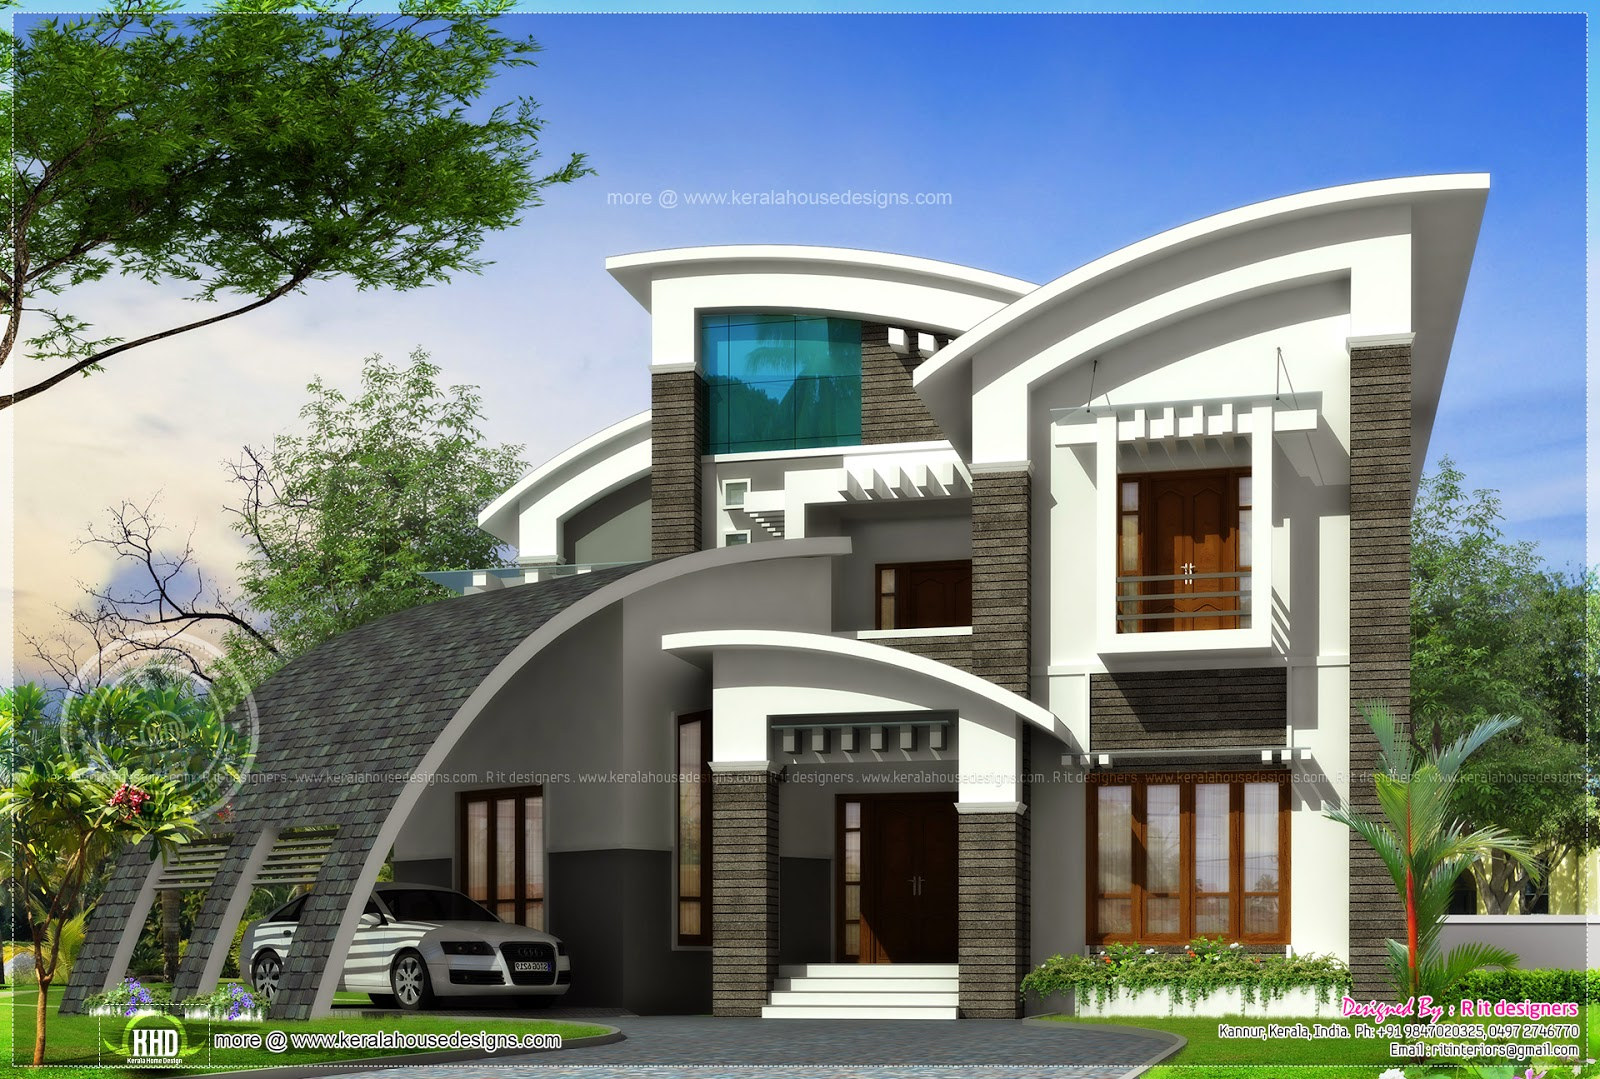 Super luxury ultra modern house design kerala home for Contemporary modern style house plans